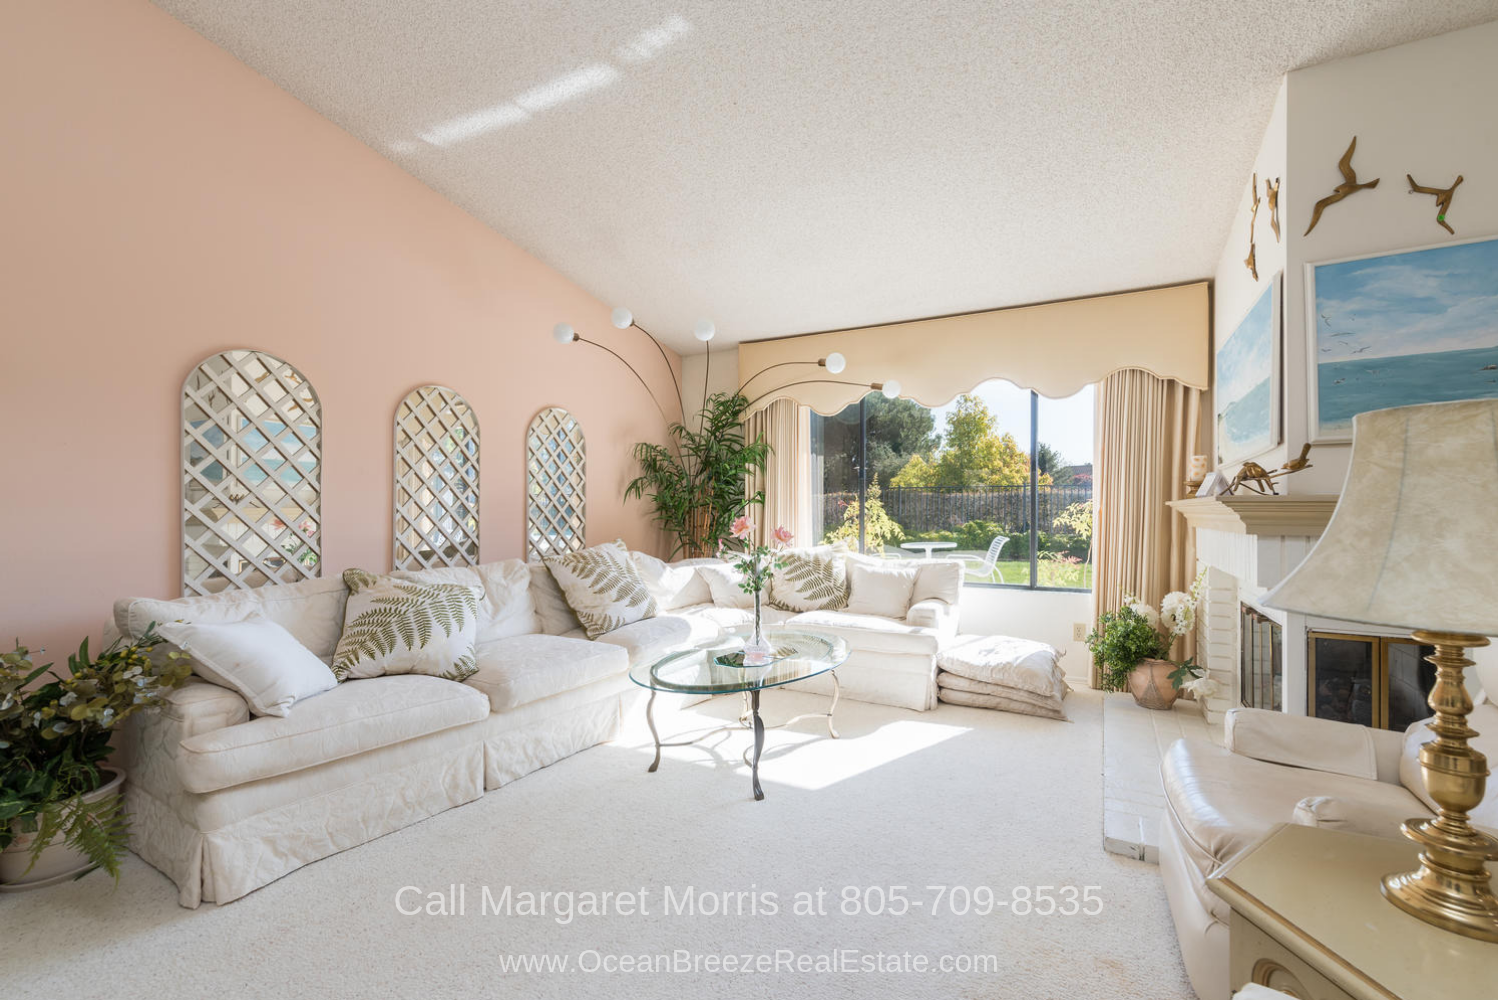 Nipomo CA  Real Estate Properties for Sale - Fall in love with the warm and inviting ambiance of the living room of this Nipomo golf course home for sale.